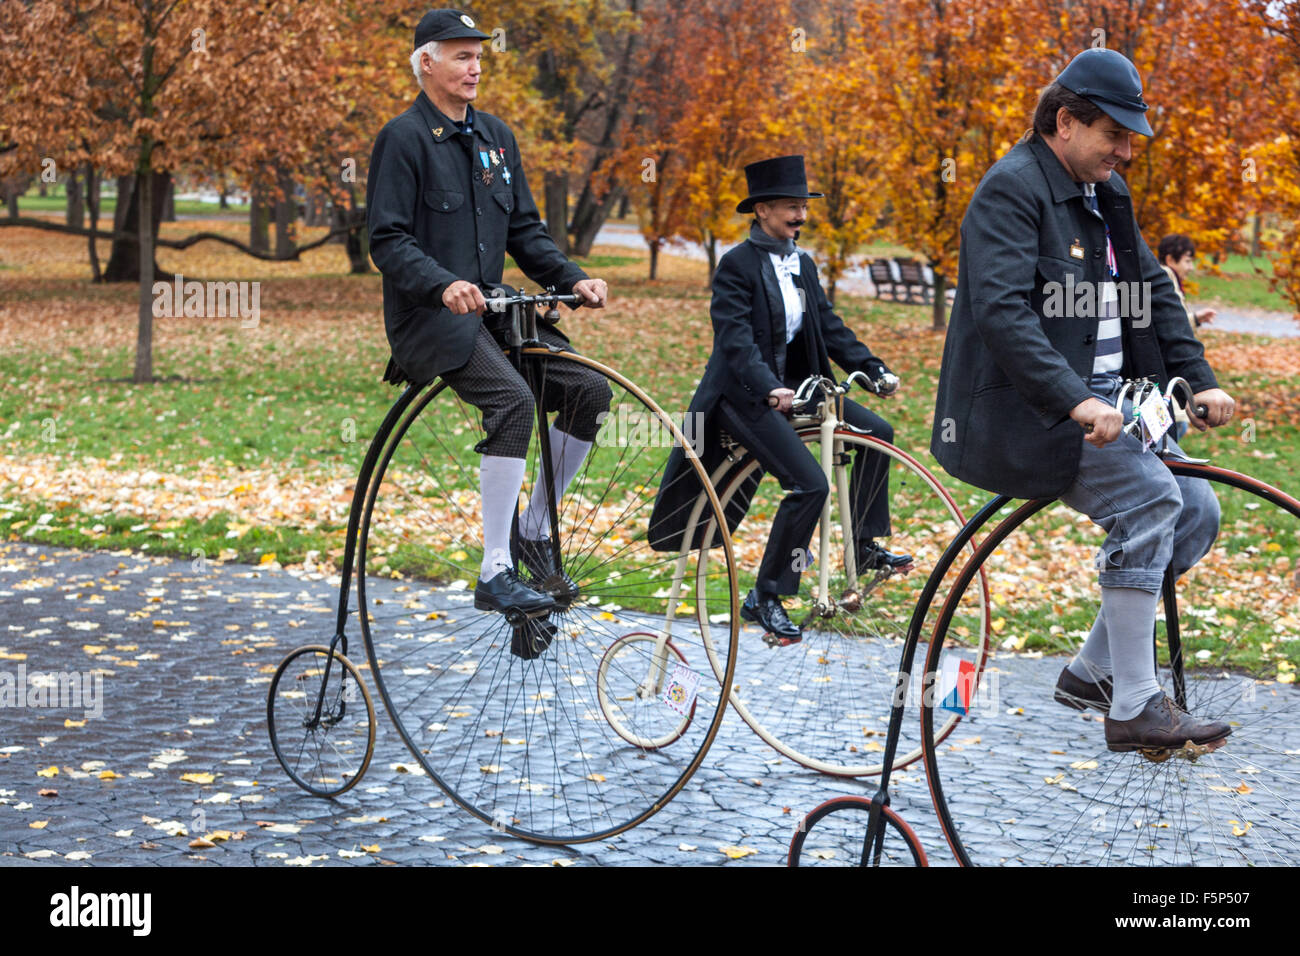 Traditional Penny Farthing bicycle race. Participants dressed in period costumes, Letna Park, Prague, Czech Republic - Stock Image